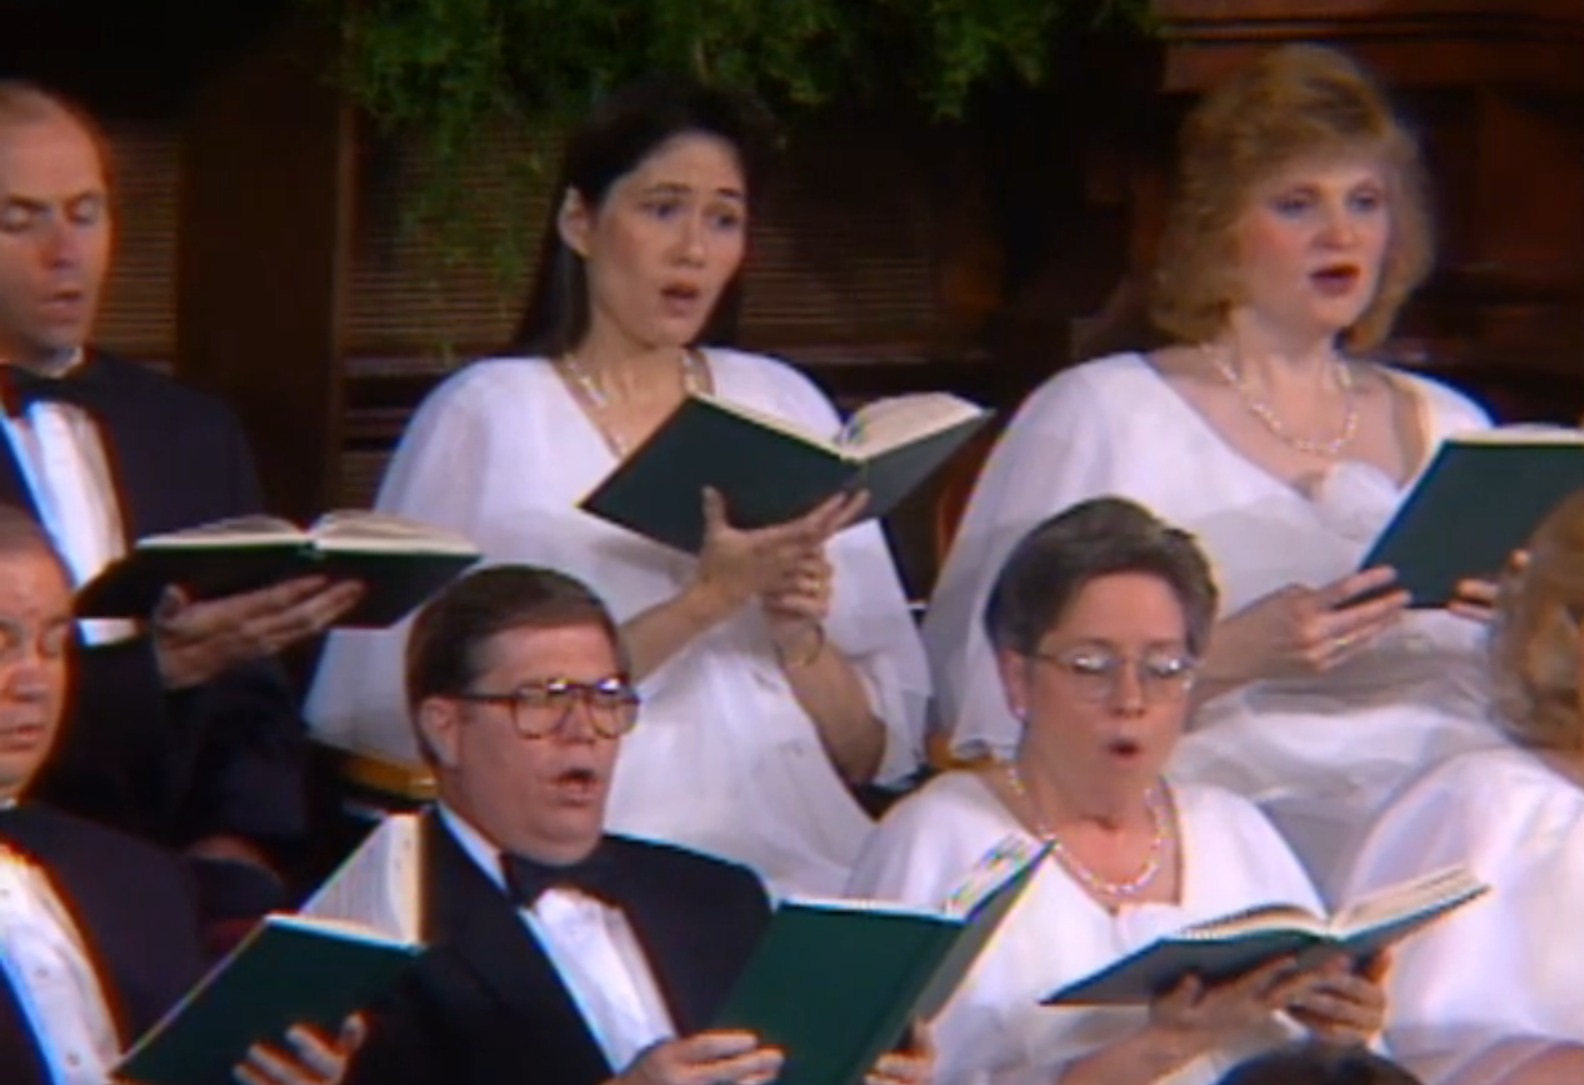 Mormon Tabernacle Choir Fashion, 1996